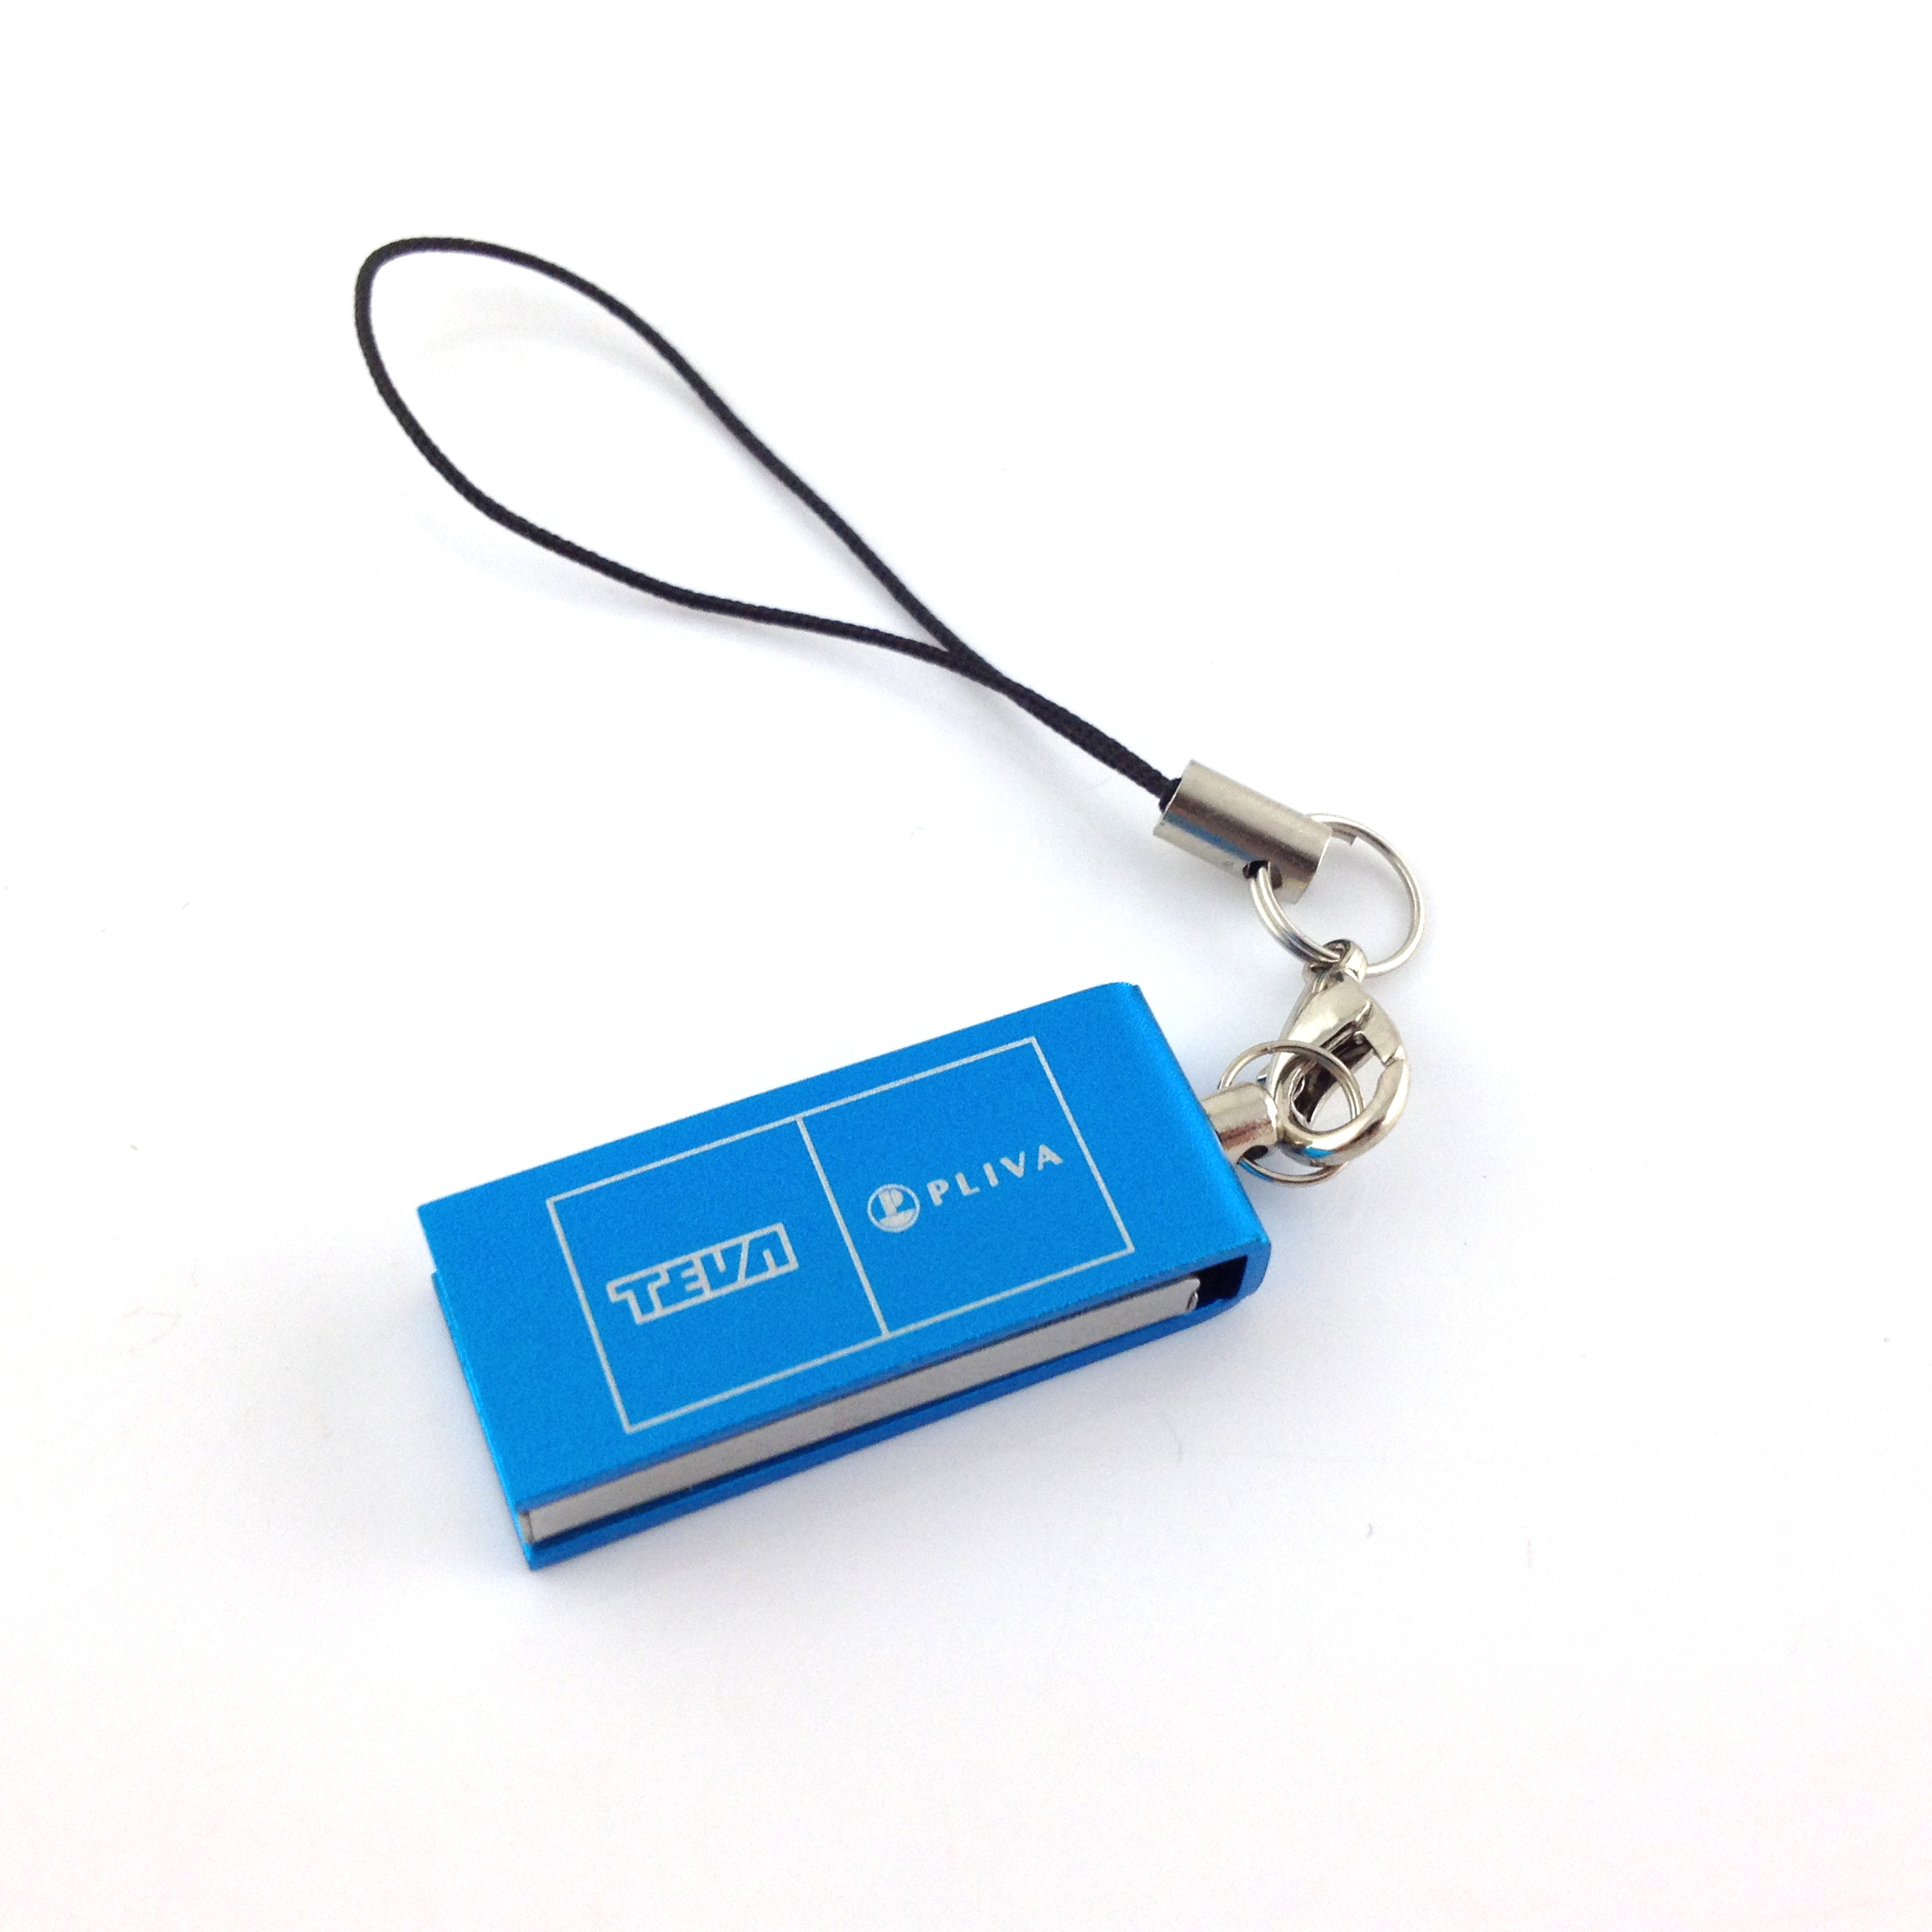 Slim Metal USB Drive